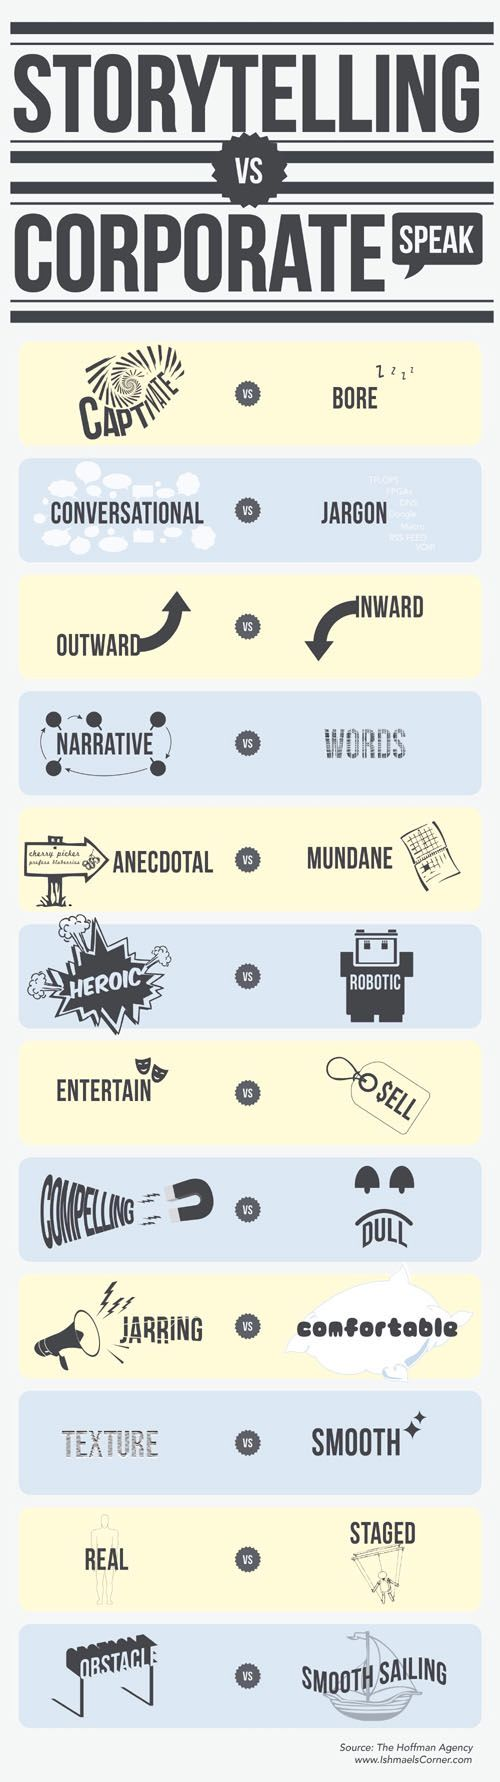 Storytelling Vs. Corporate Speak - Infographic